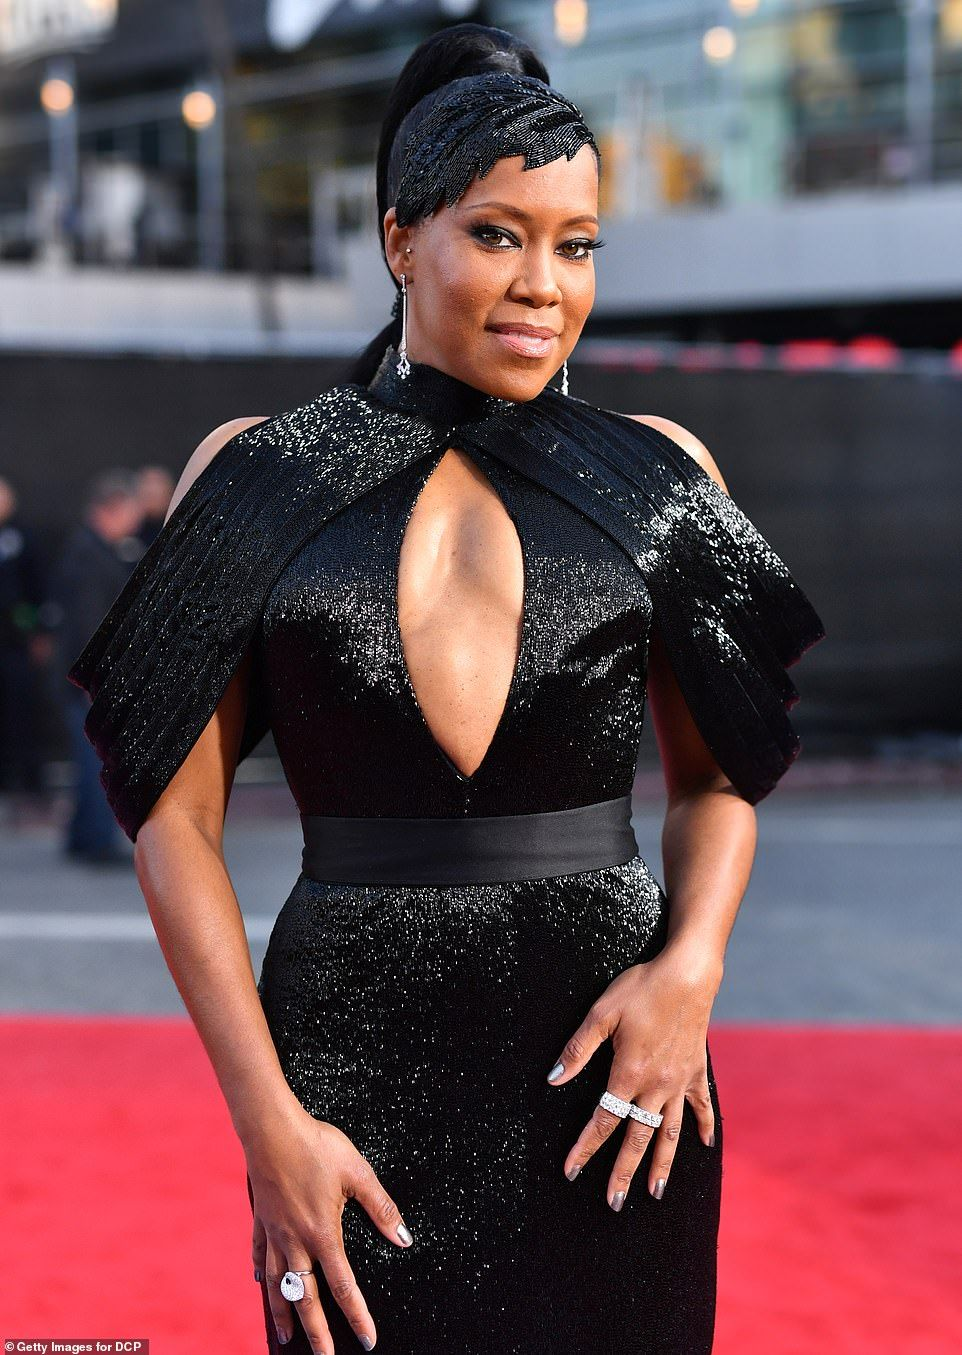 American Music Awards 2019 Best dressed stars on the red